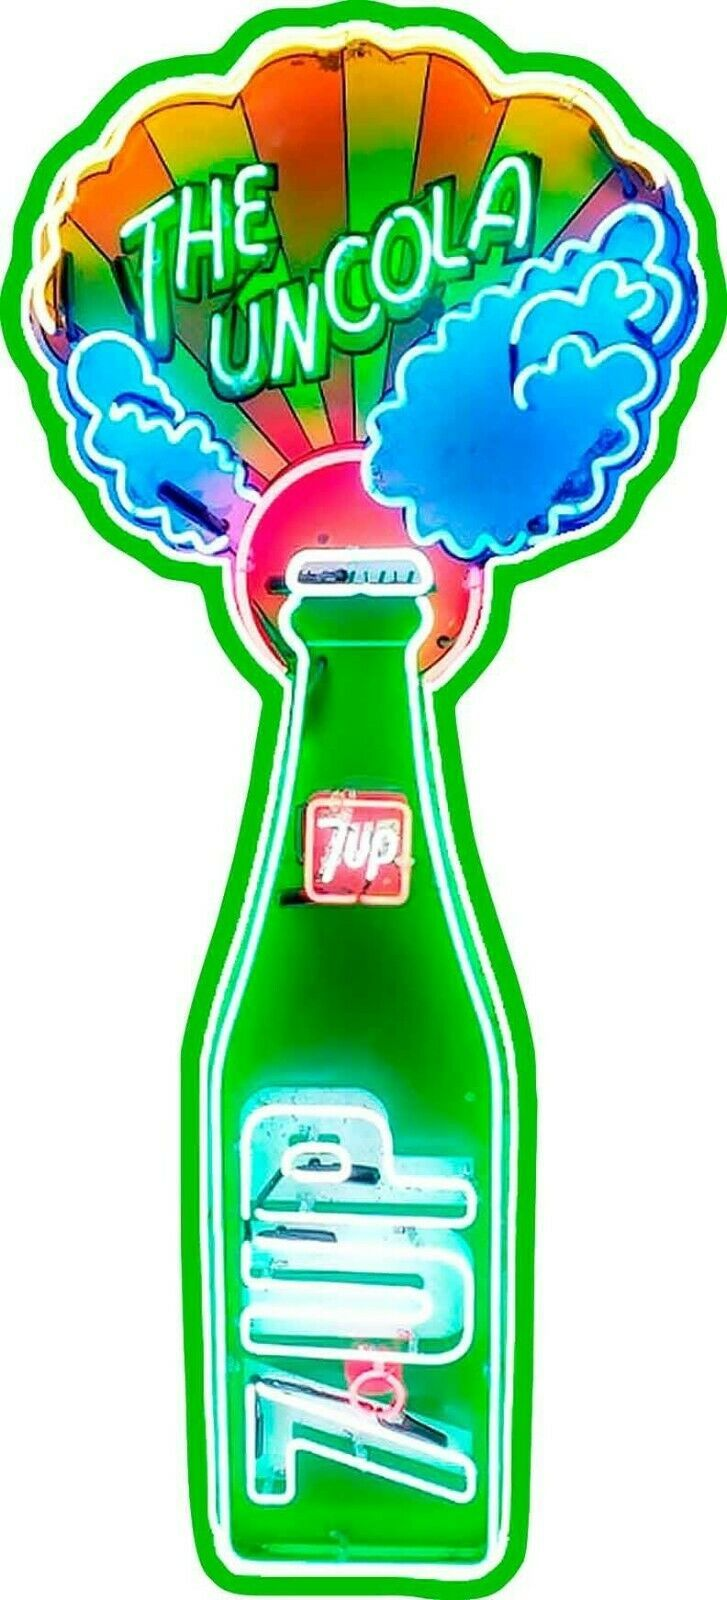 The Uncola 7 UP Neon Style Metal Sign, Vintage Inspired Advertisement - $59.95